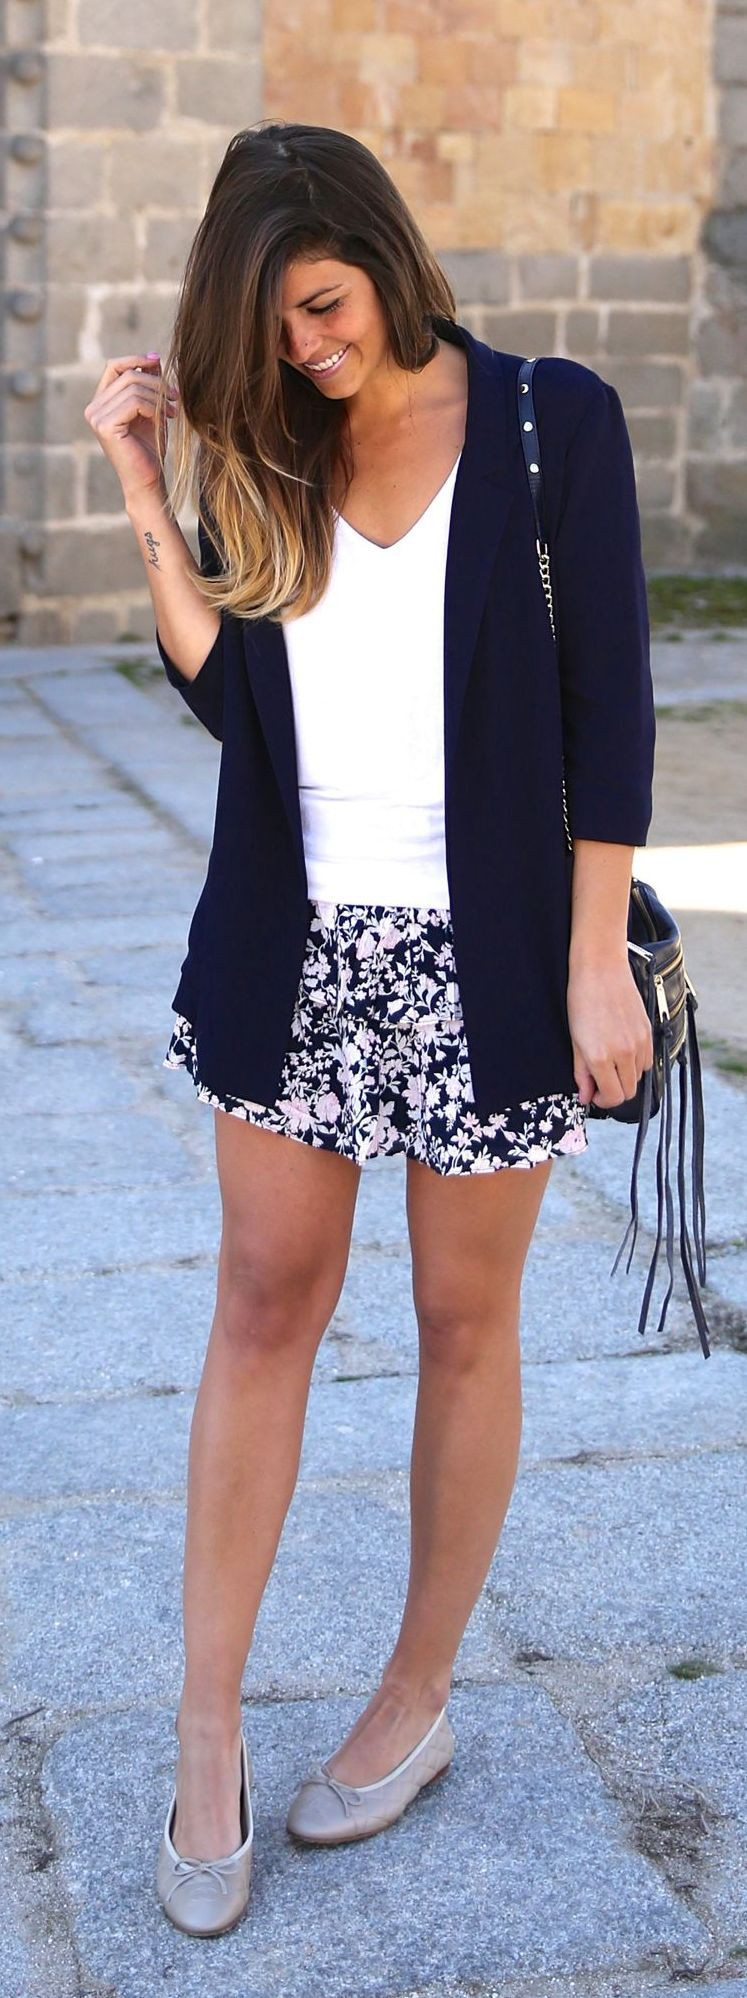 Black and white classy outfit with little black dress, little black dress, shorts, blazer